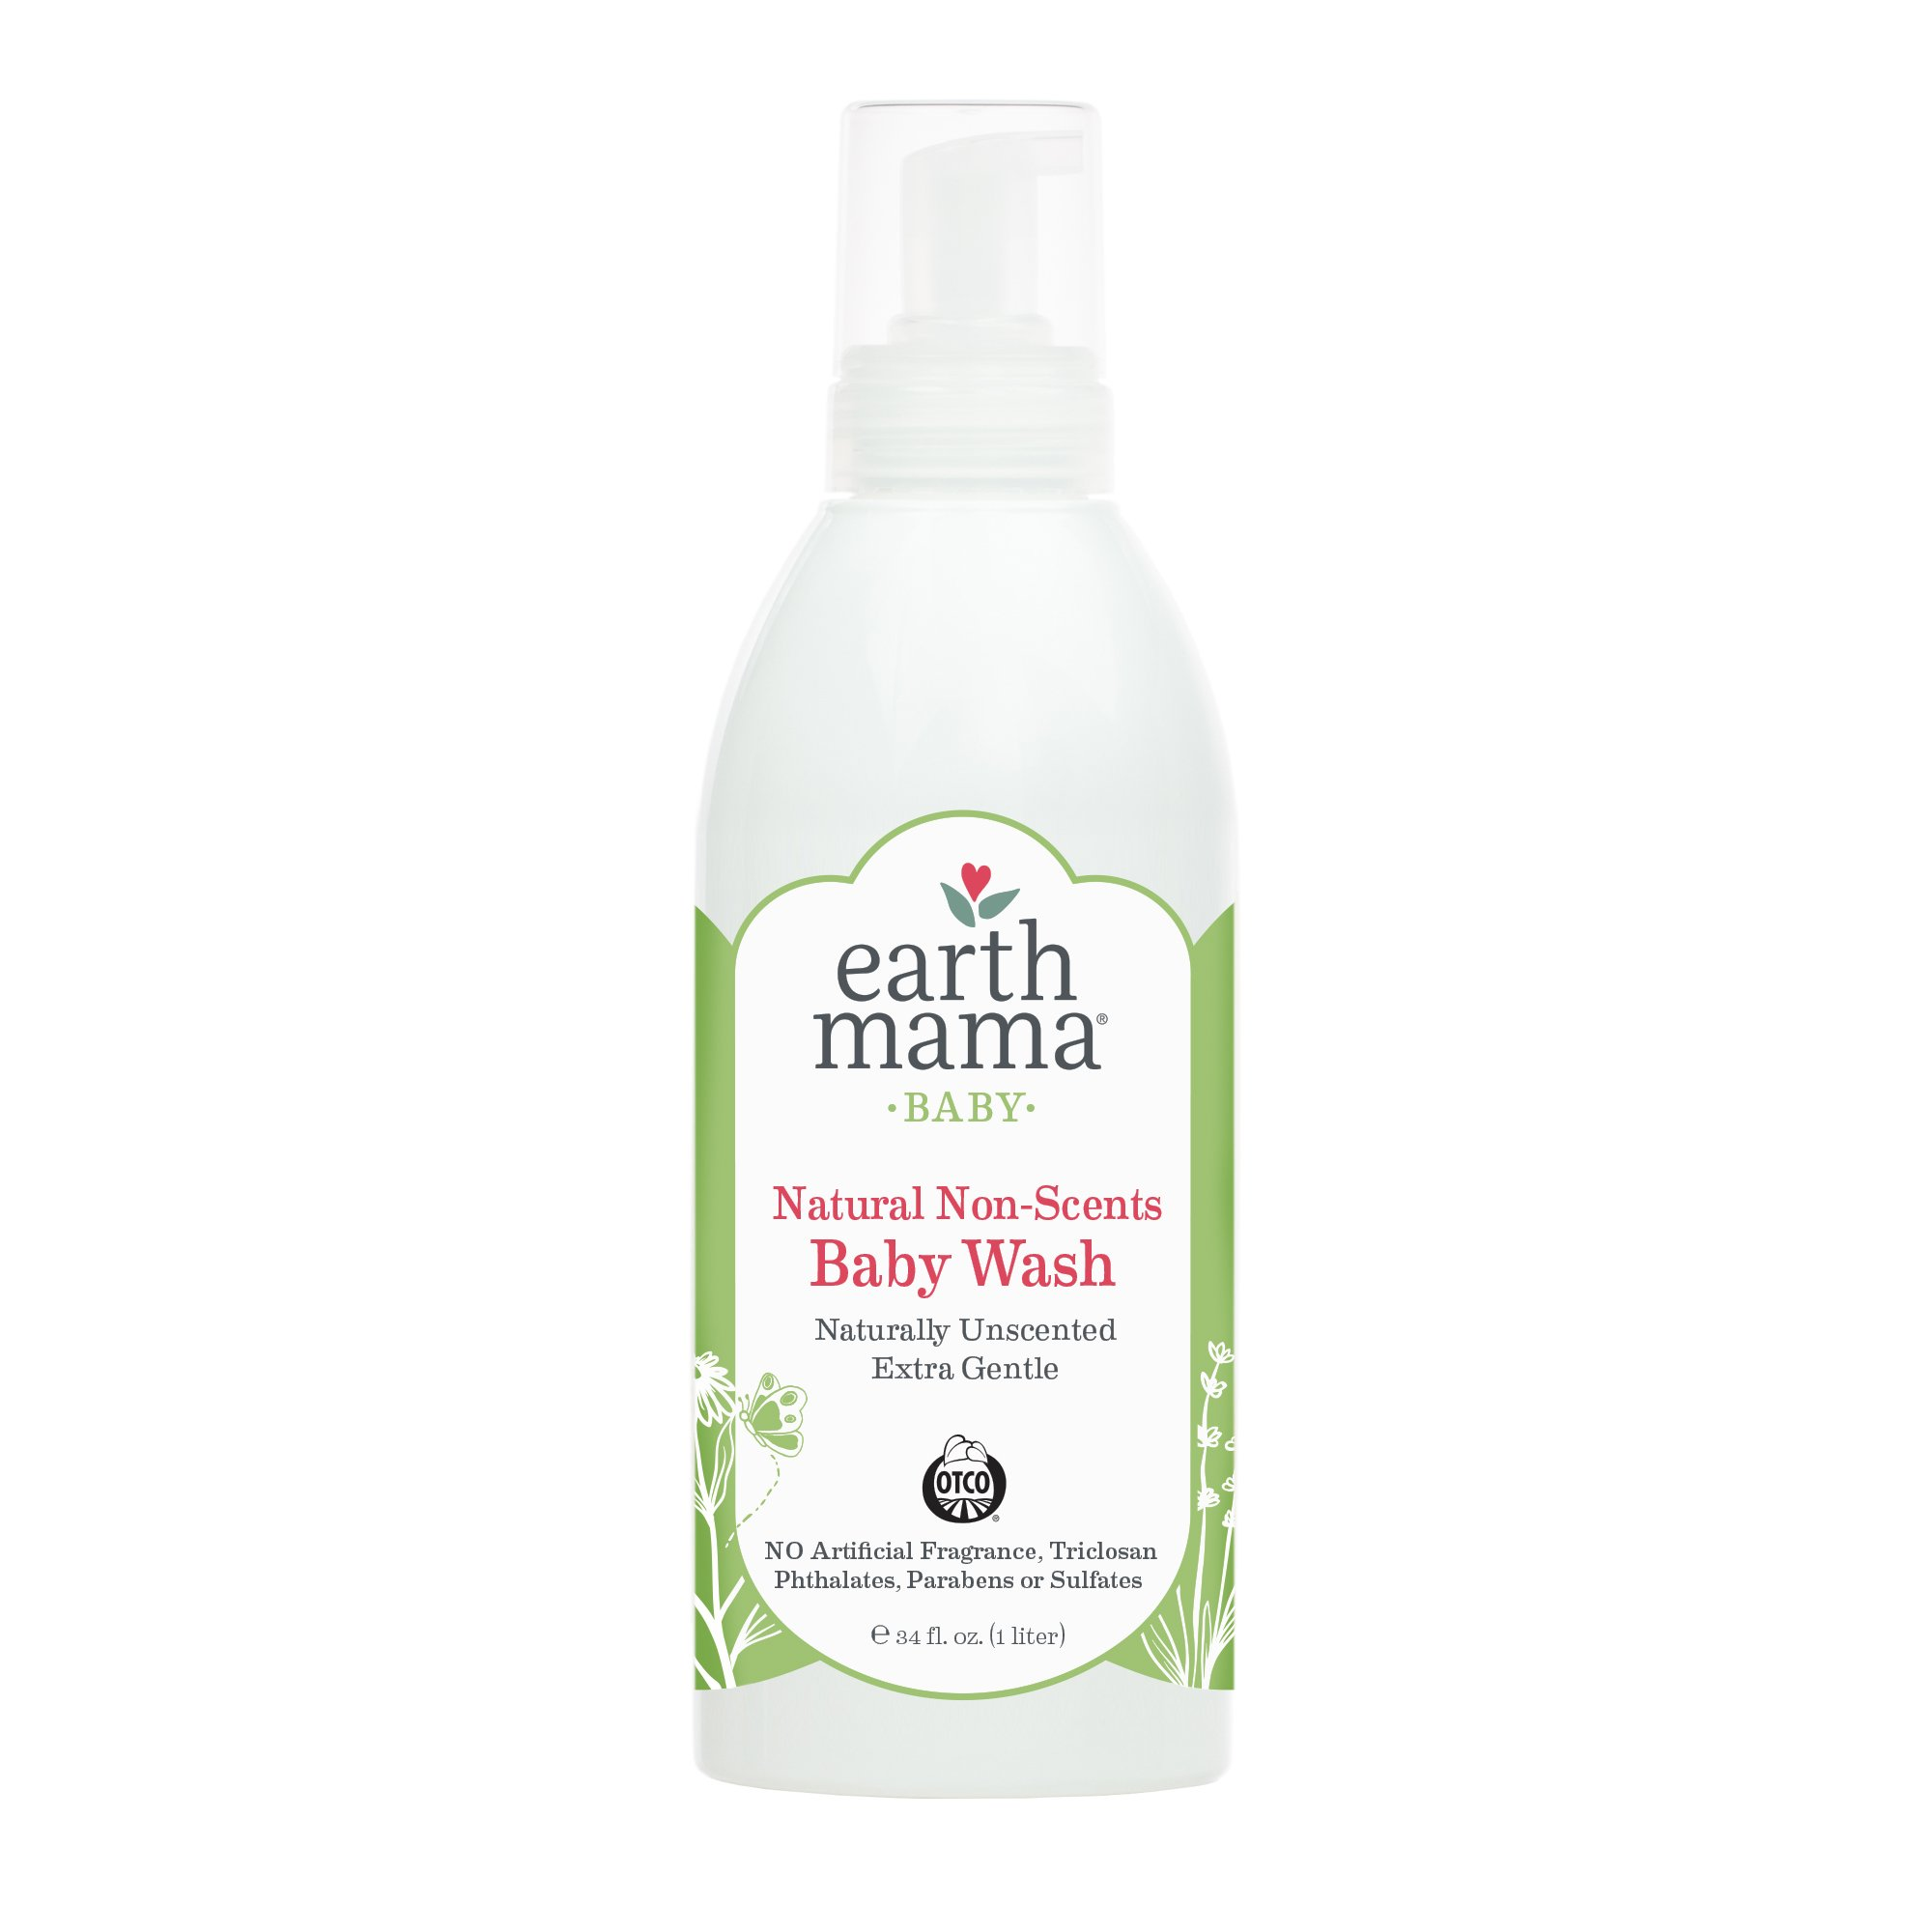 Earth Mama Natural Non-Scents Baby Wash Gentle Castile Soap for Sensitive Skin, 34-Fluid Ounce (Packaging May Vary)